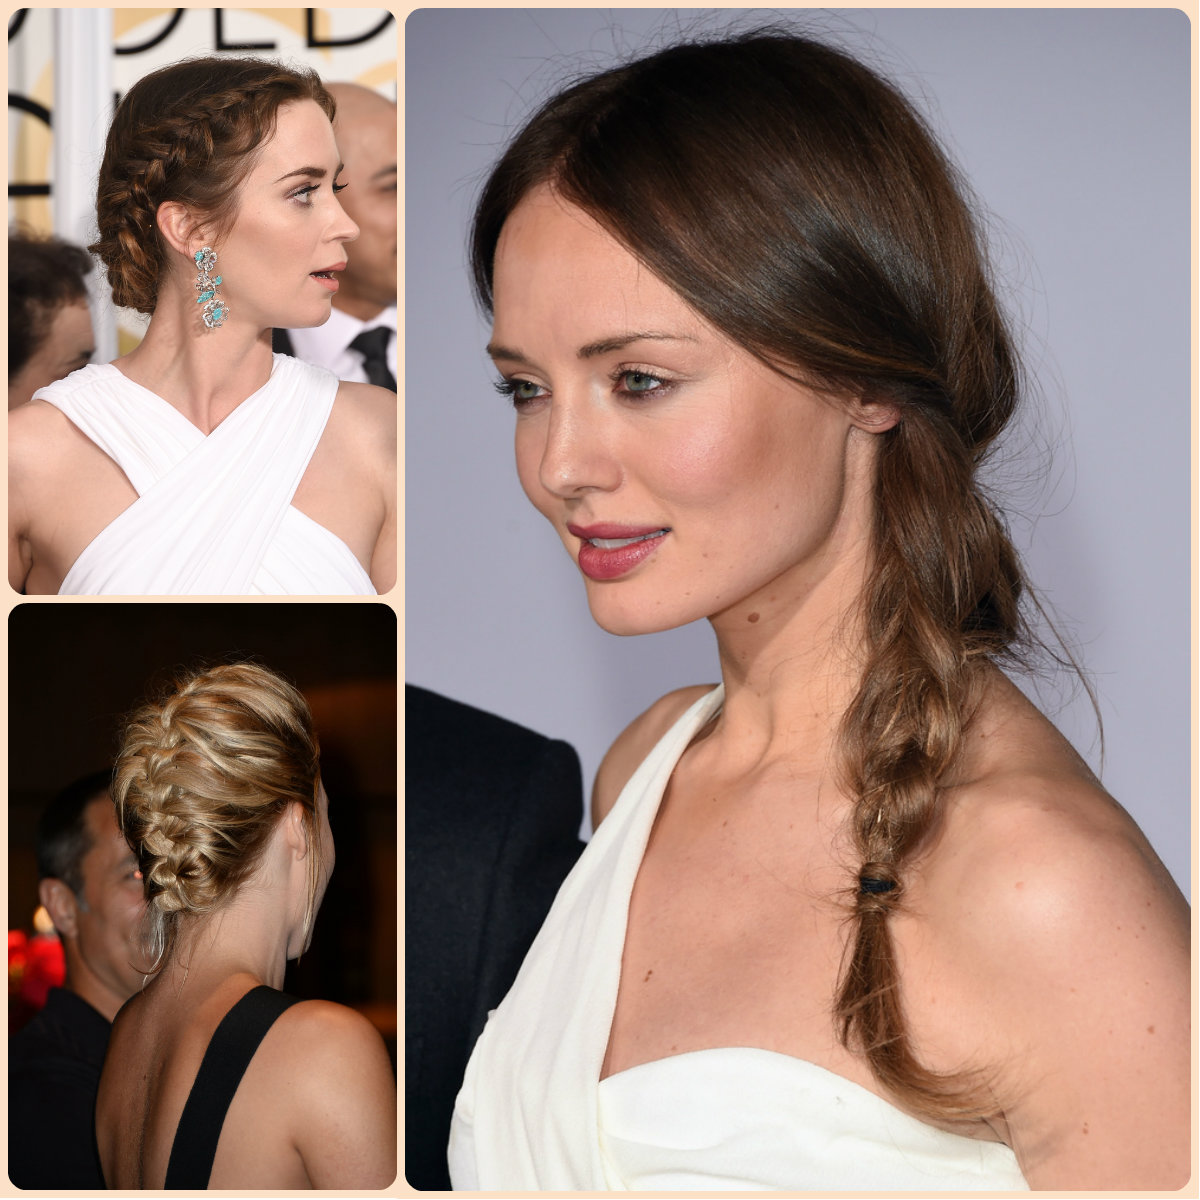 braided hairstyles archives | page 6 of 13 | hairstyles 2017, hair